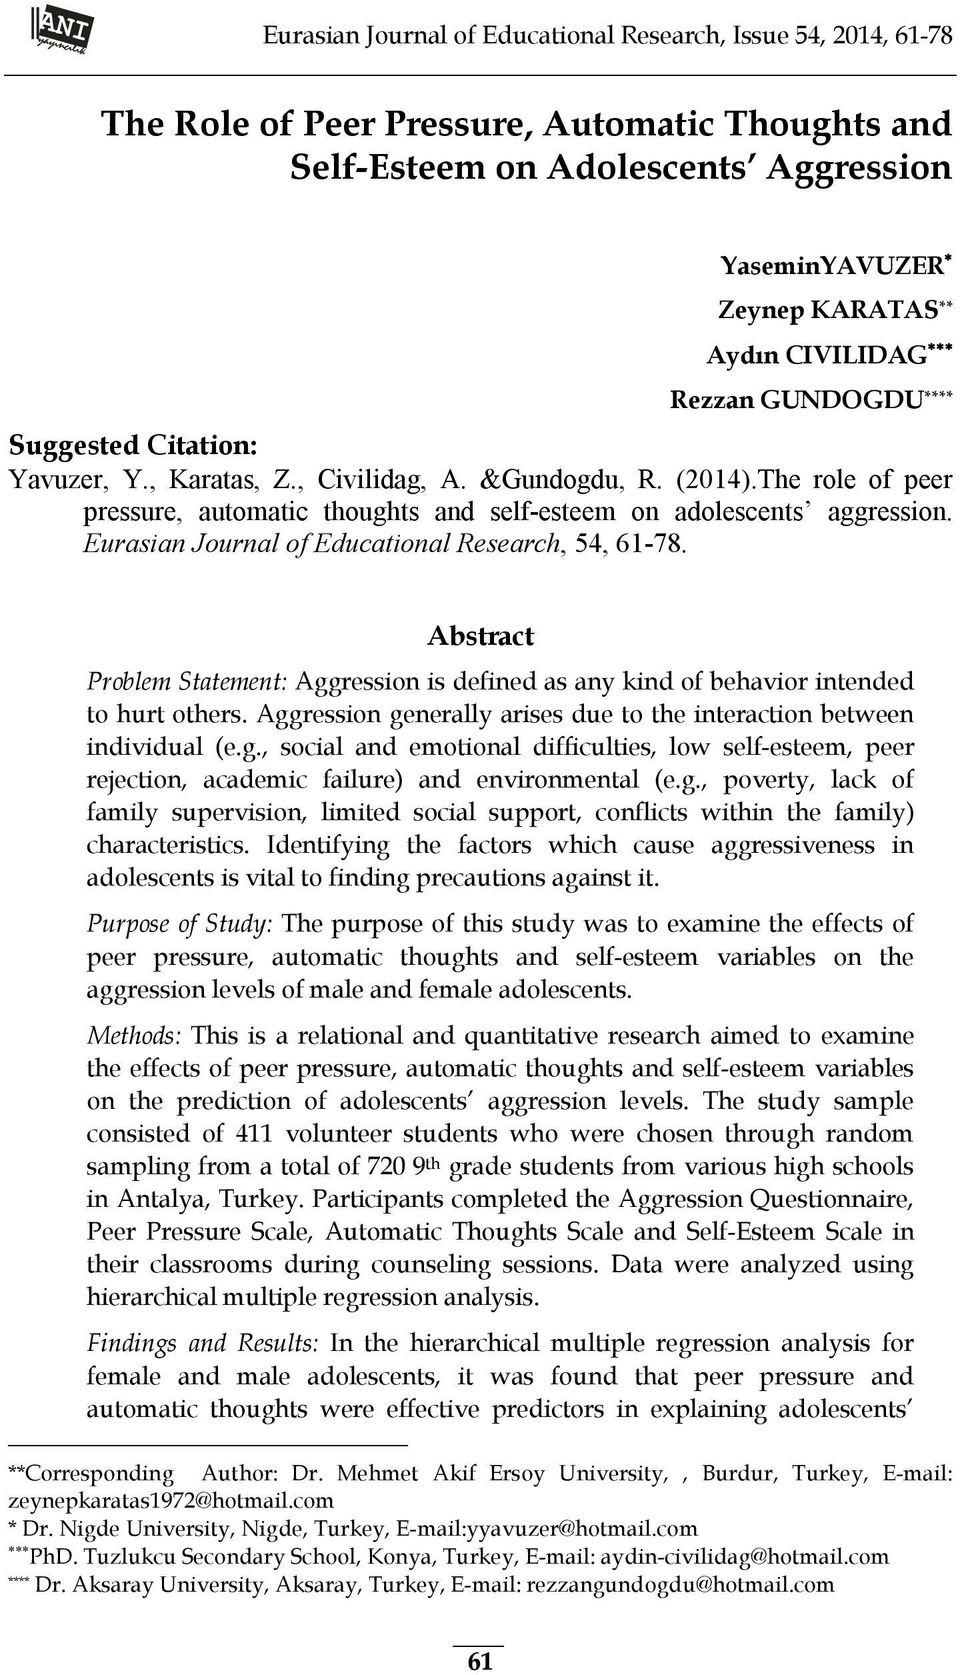 Eurasian Journal of Educational Research, 54, 61-78. Abstract Problem Statement: Aggression is defined as any kind of behavior intended to hurt others.